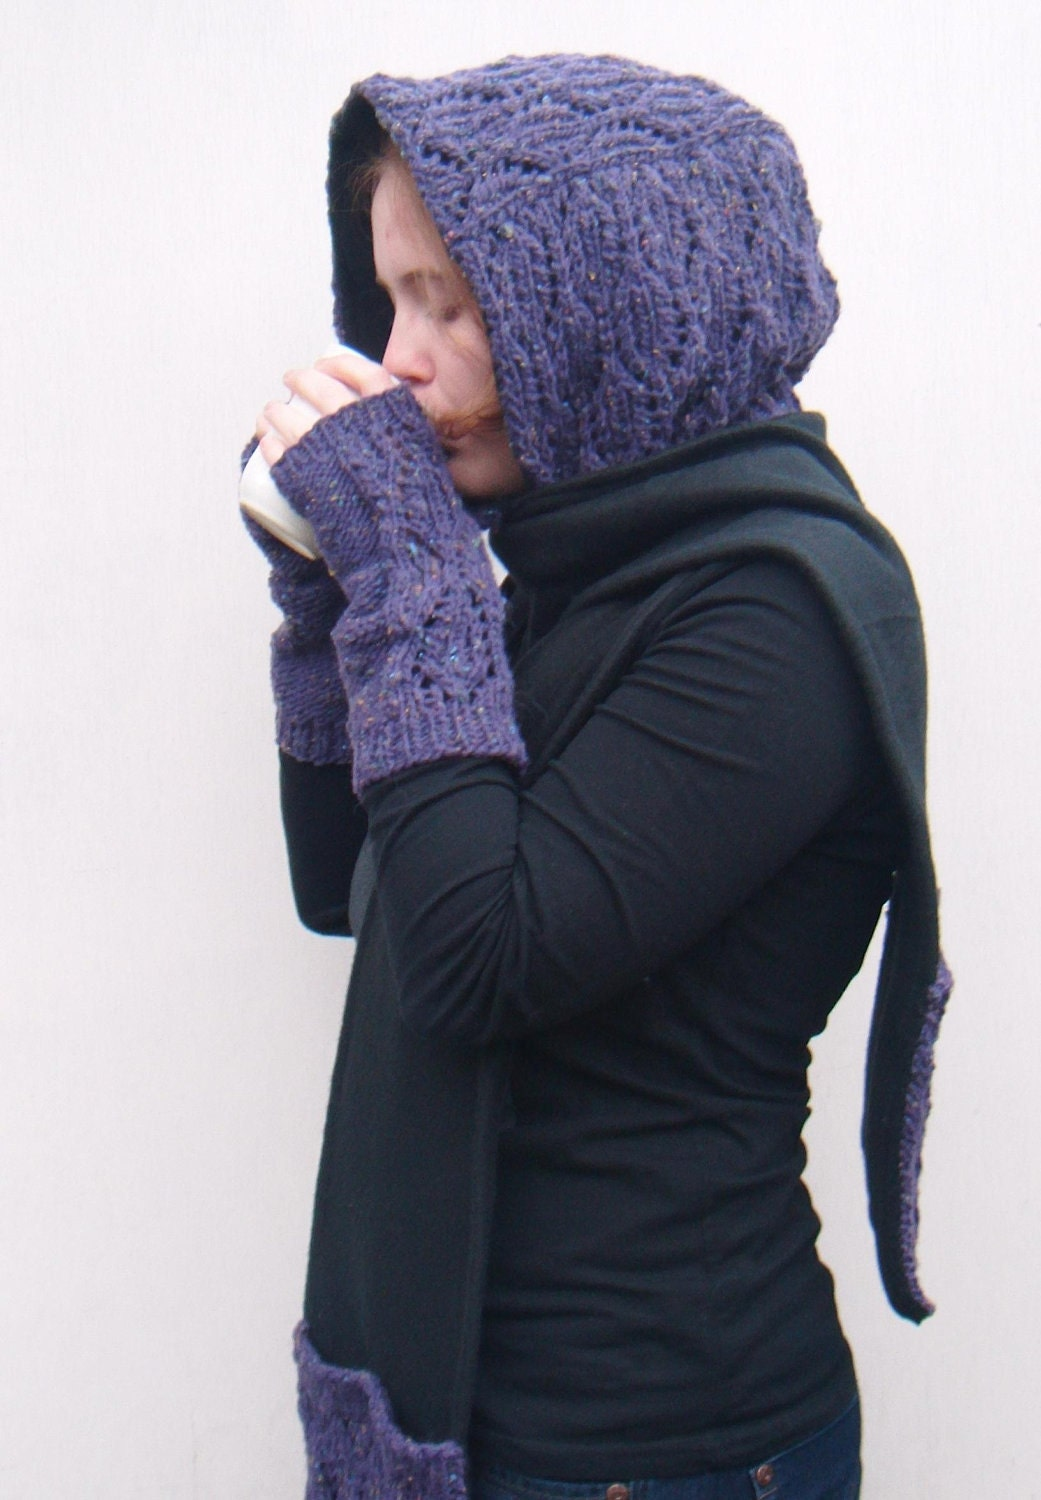 Knitting Pattern Scarf With Pockets : Hooded Scarf with Pockets Pocket Scarf Hoodie Scoodie Knit